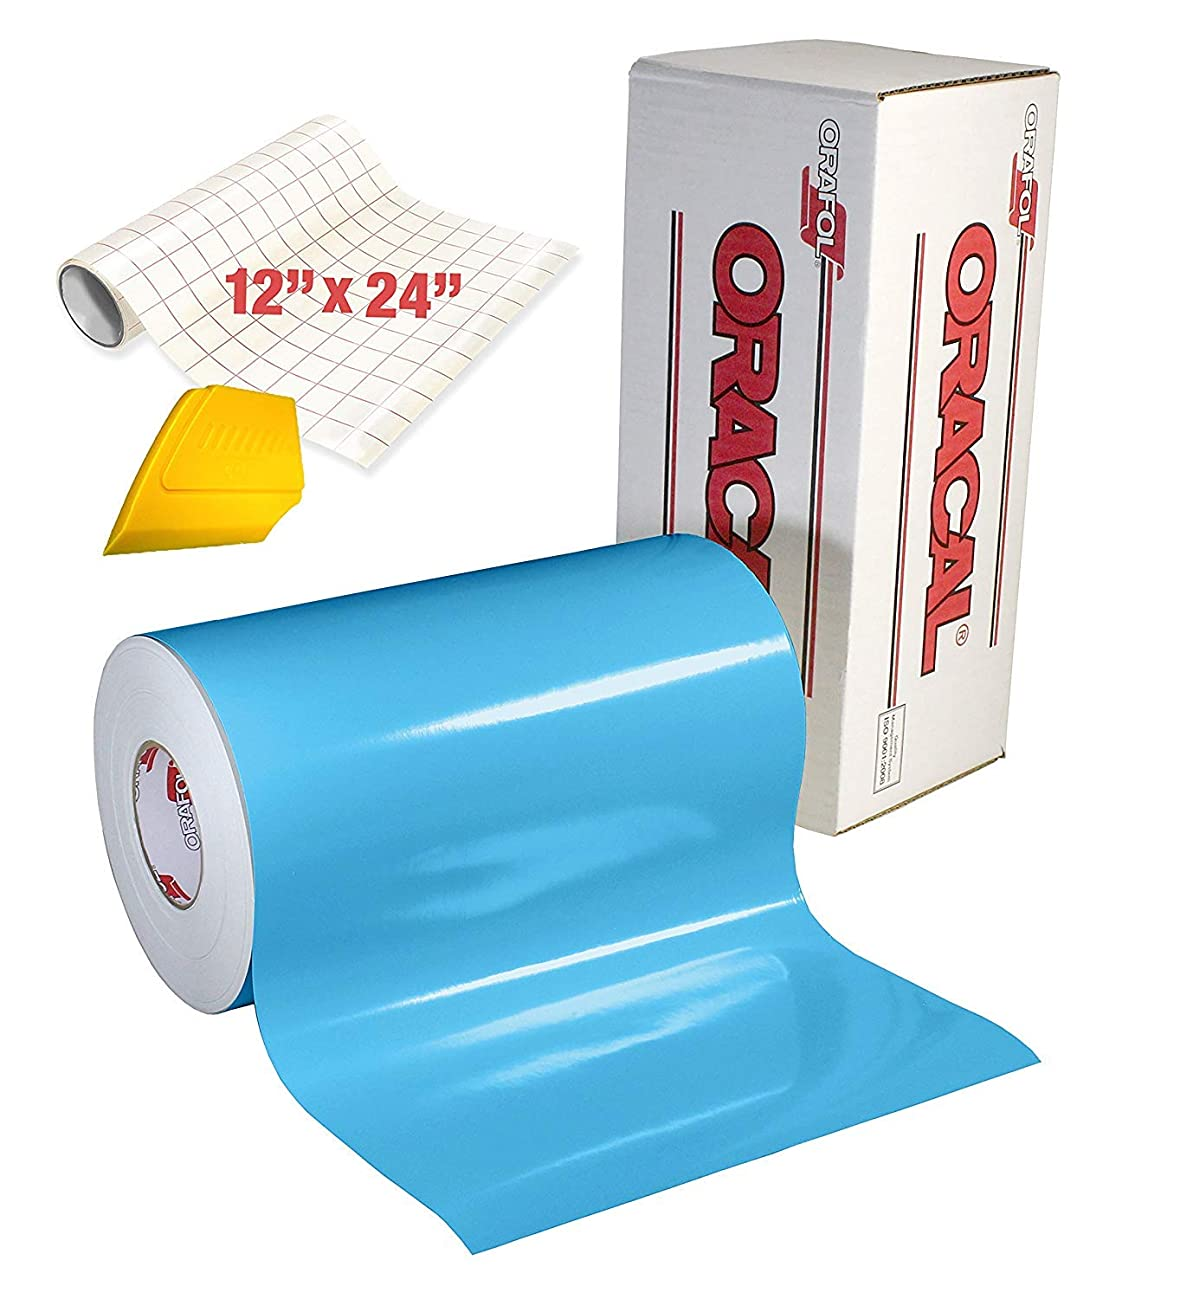 ORACAL 651 High Gloss Craft Adhesive Vinyl 15ft x 1ft Roll w/ 12